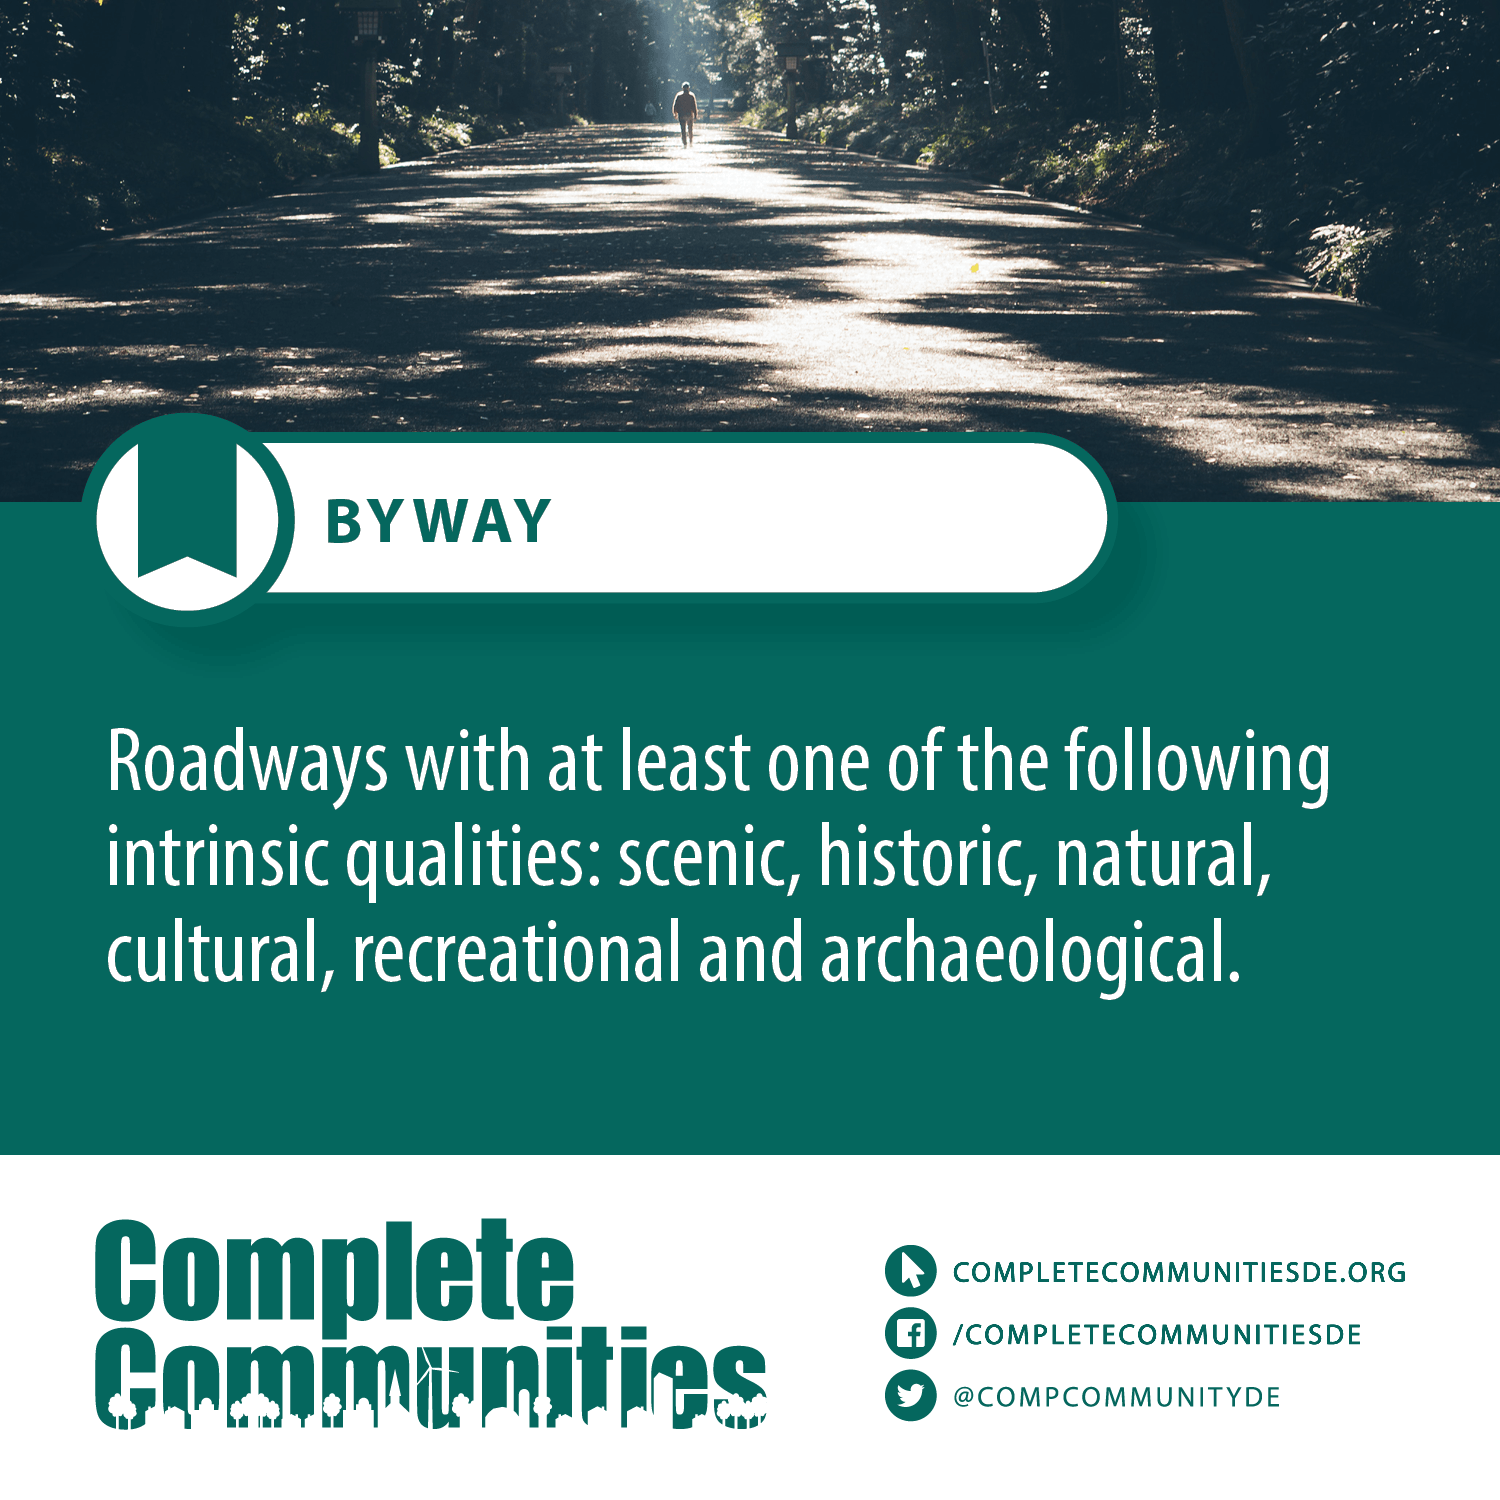 Byway: Roadways with at lease on of the following intrinsic qualities: scenic, historic, natural, cultural, recreational and achaeological.